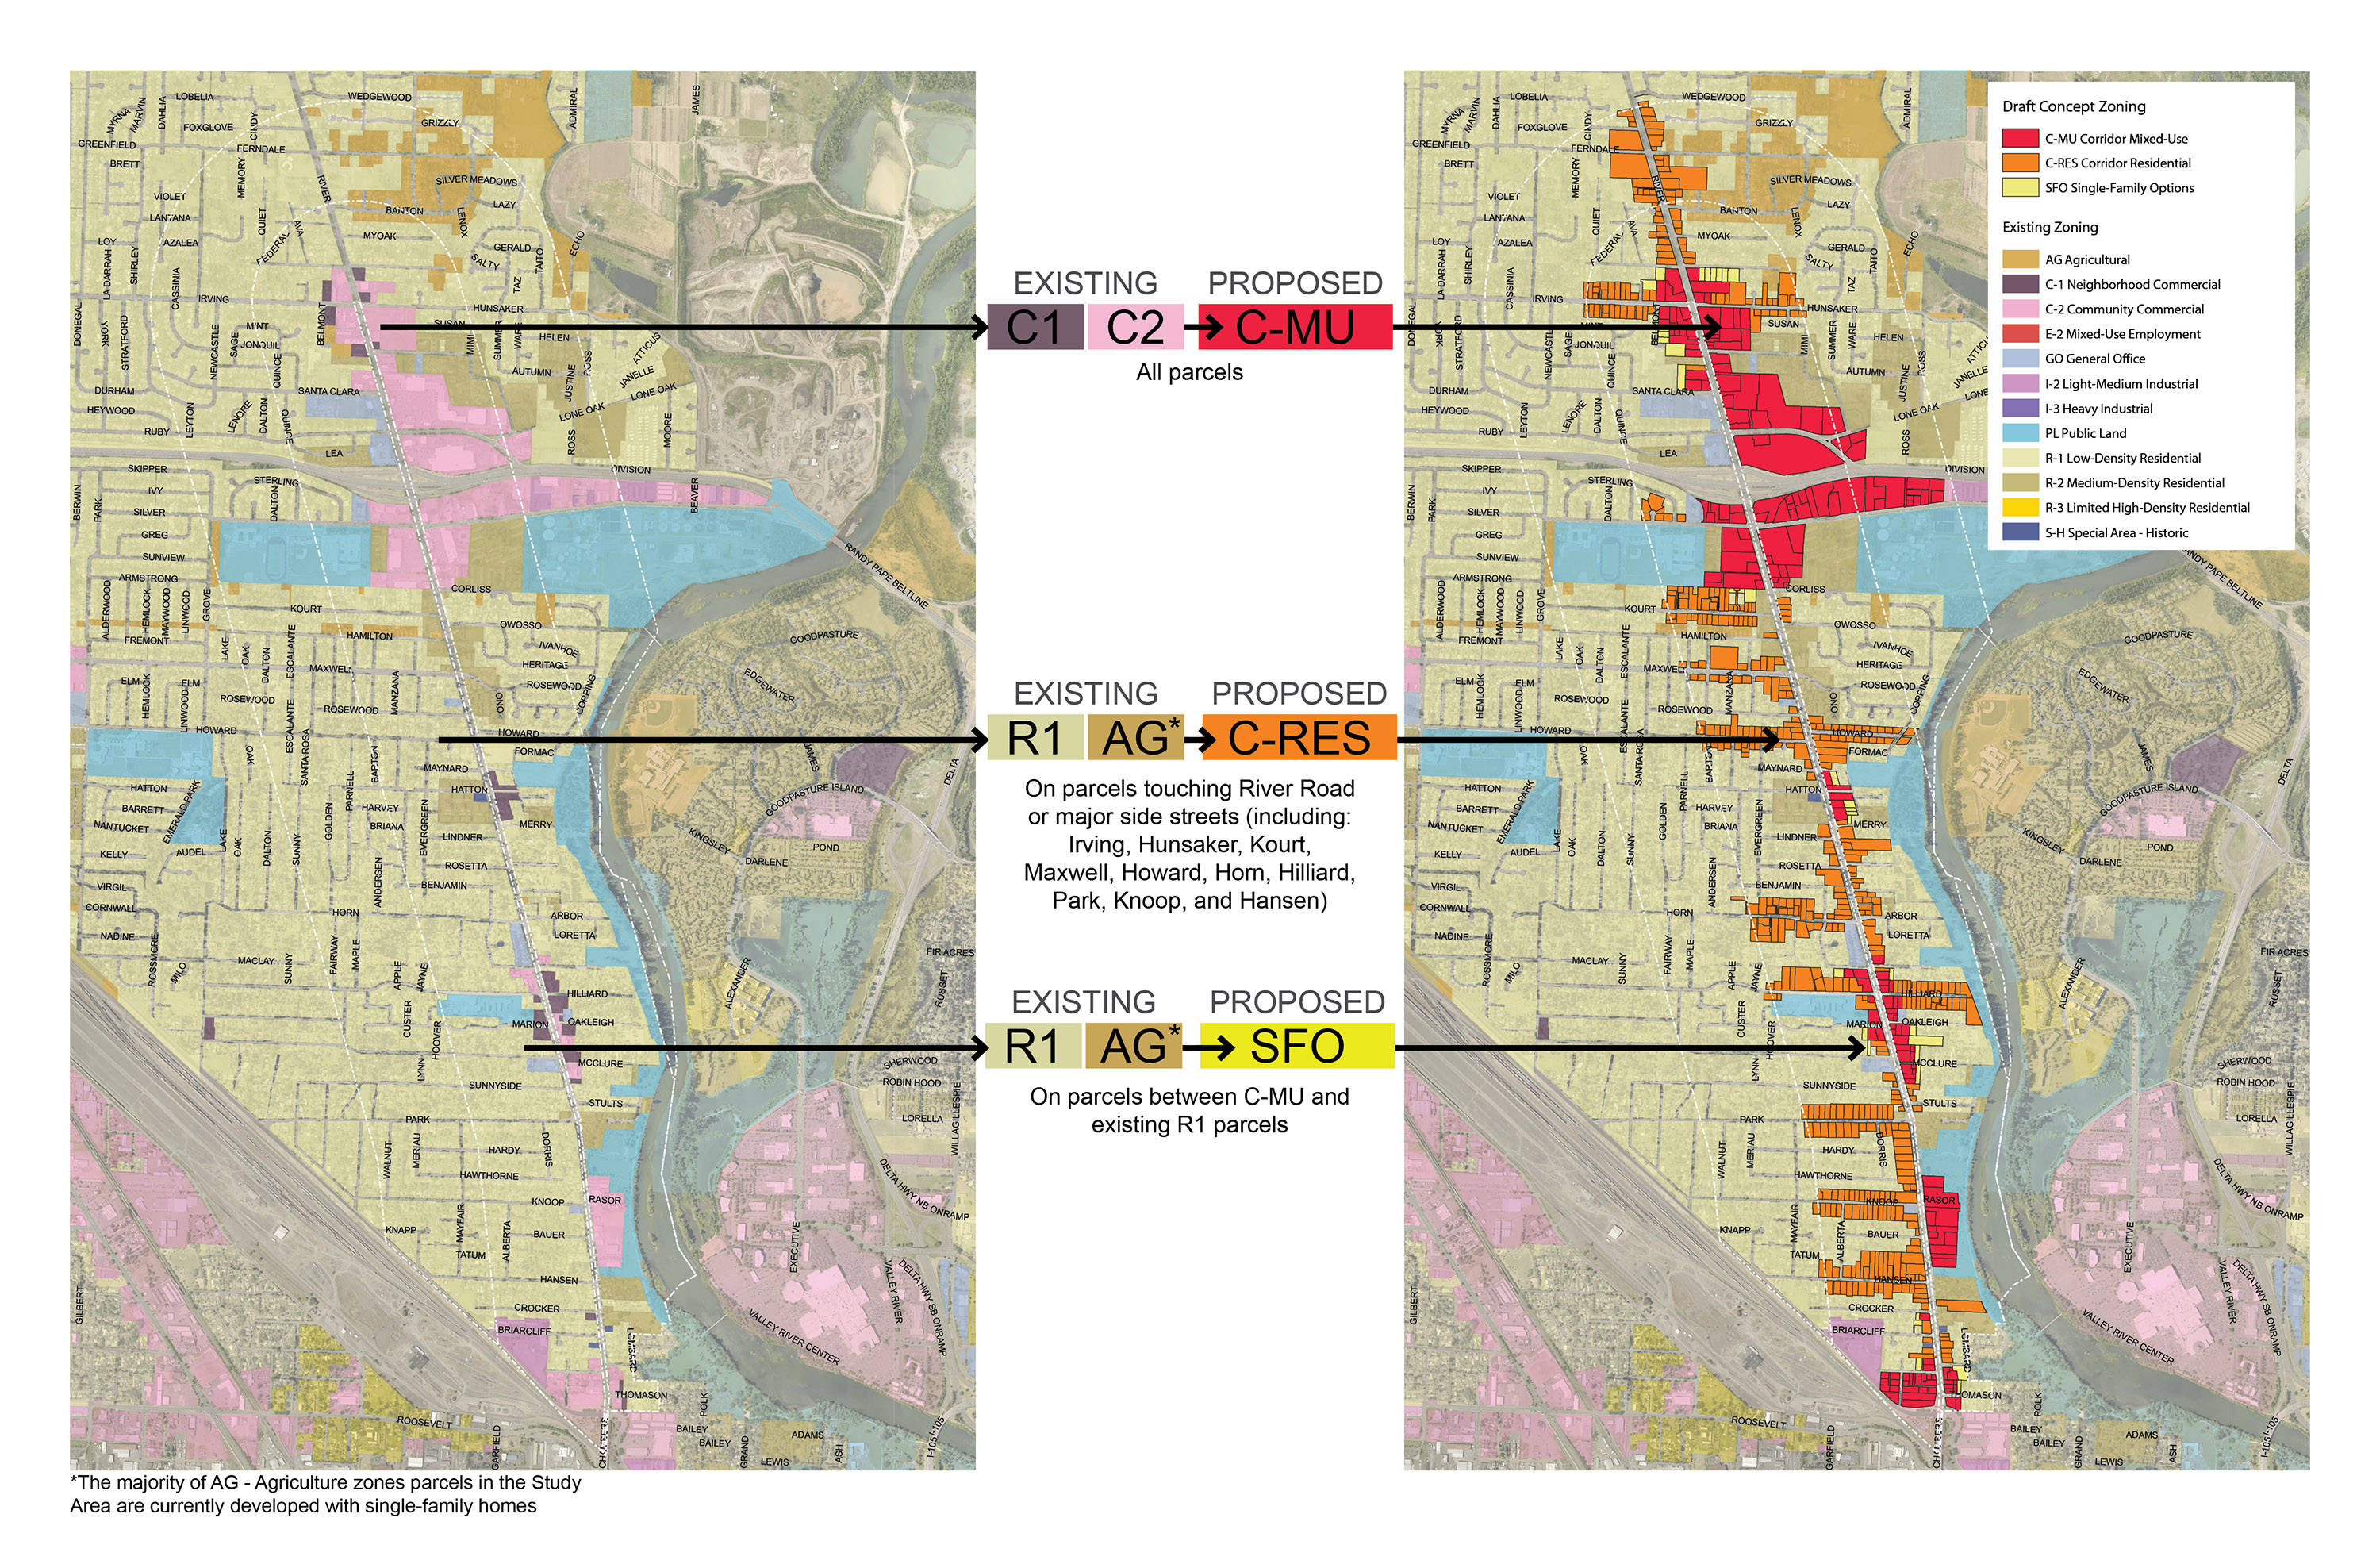 """<span style=""""color: #36545f;""""><strong>How Zones Switch Between Current Zoning and Concept 1 Proposed Zoning</strong></span>"""